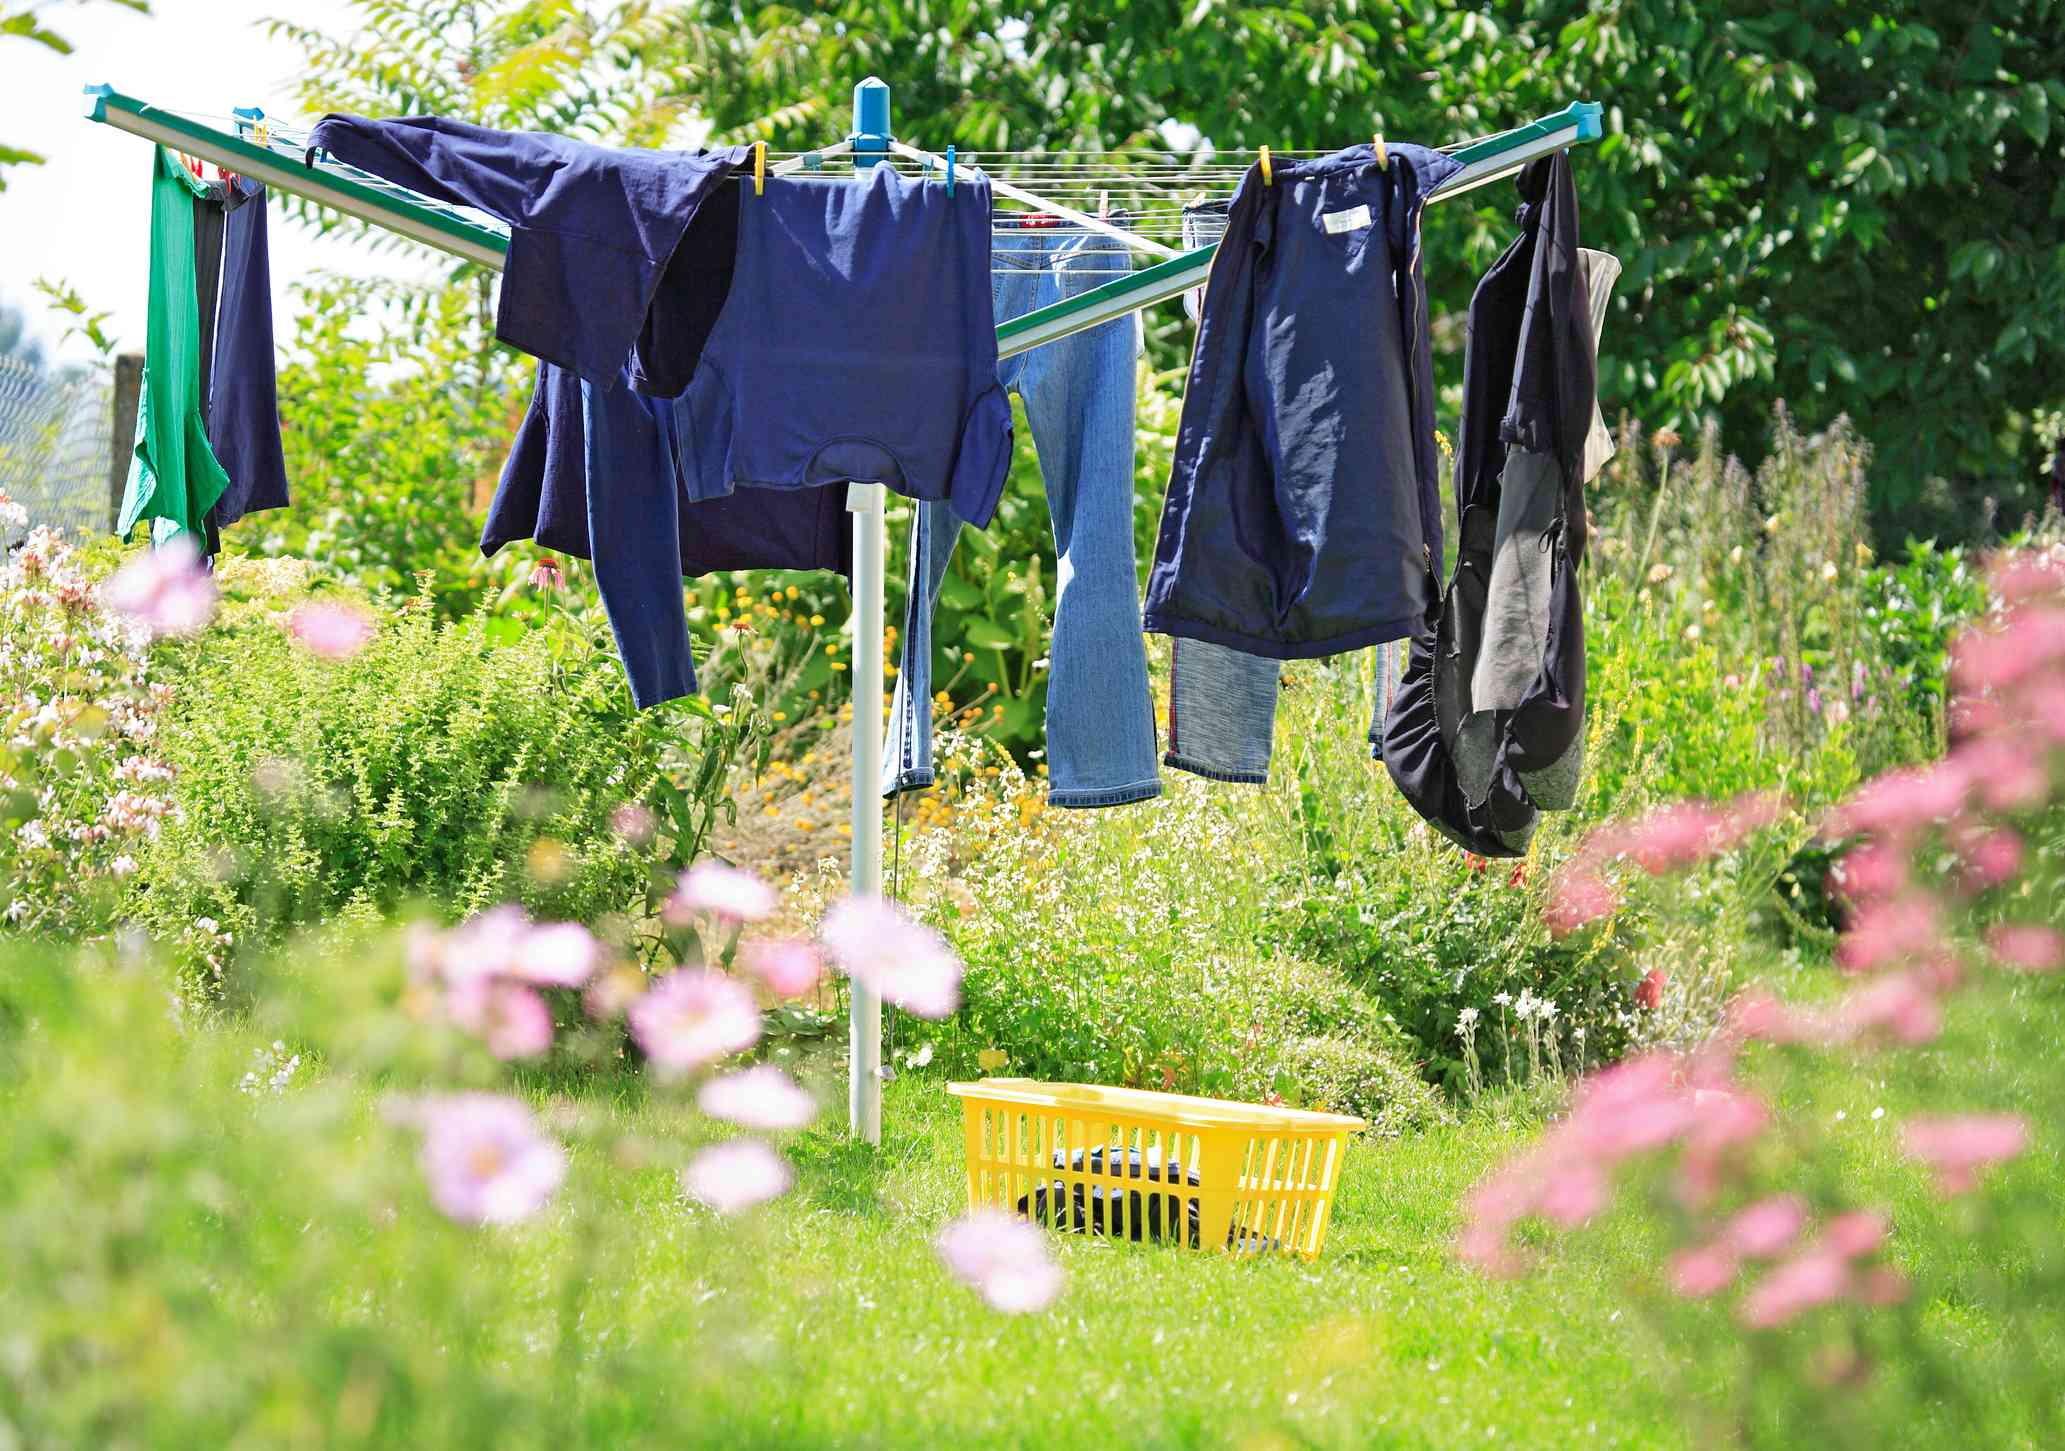 Clothes hanging in a garden on a hills hoist.